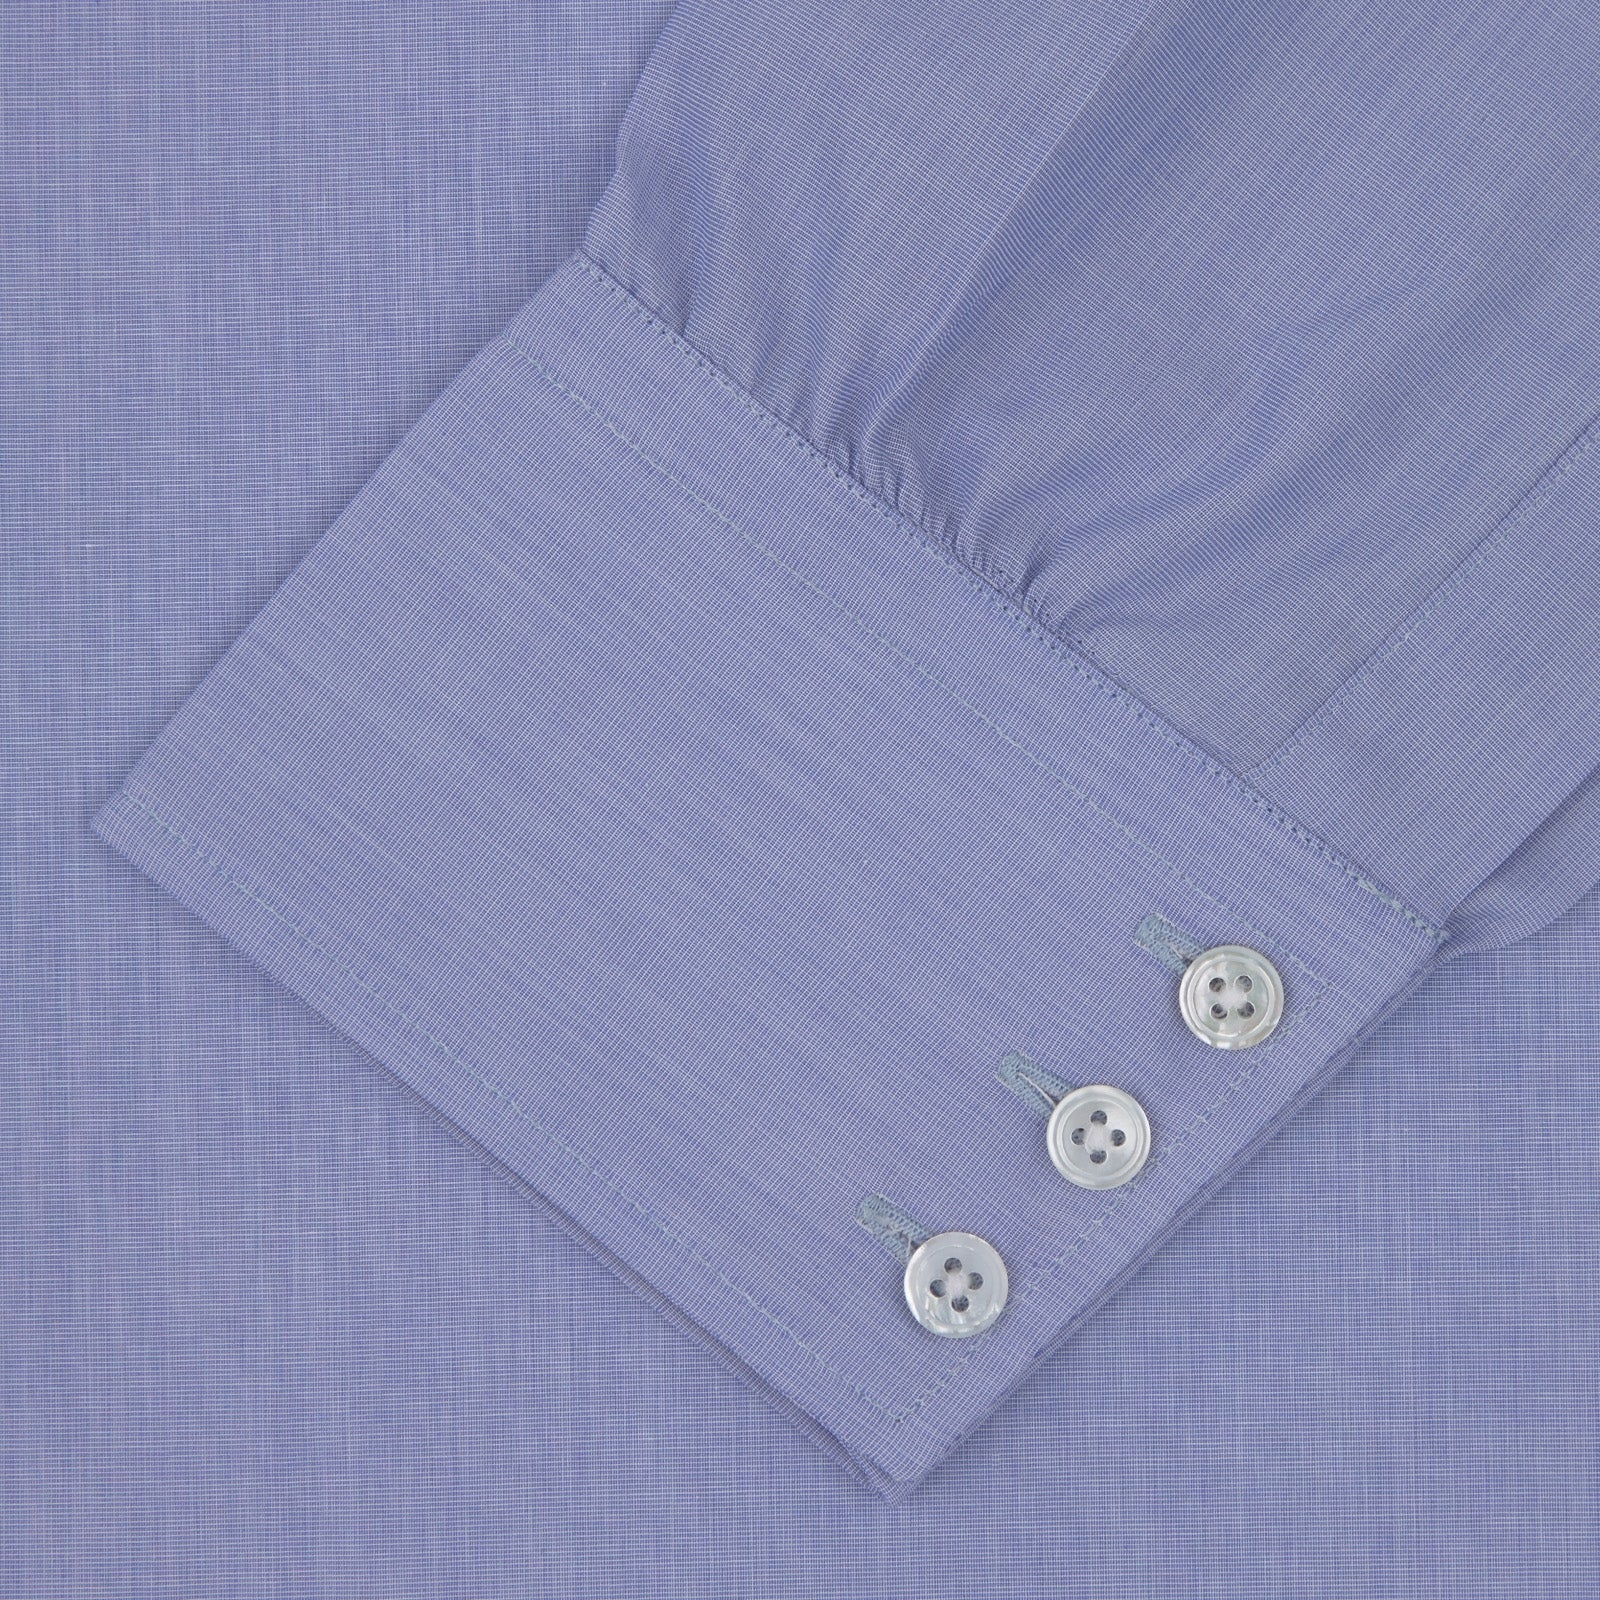 Dark Blue Sea Island Quality Cotton Shirt with T&A Collar and 3-Button Cuffs